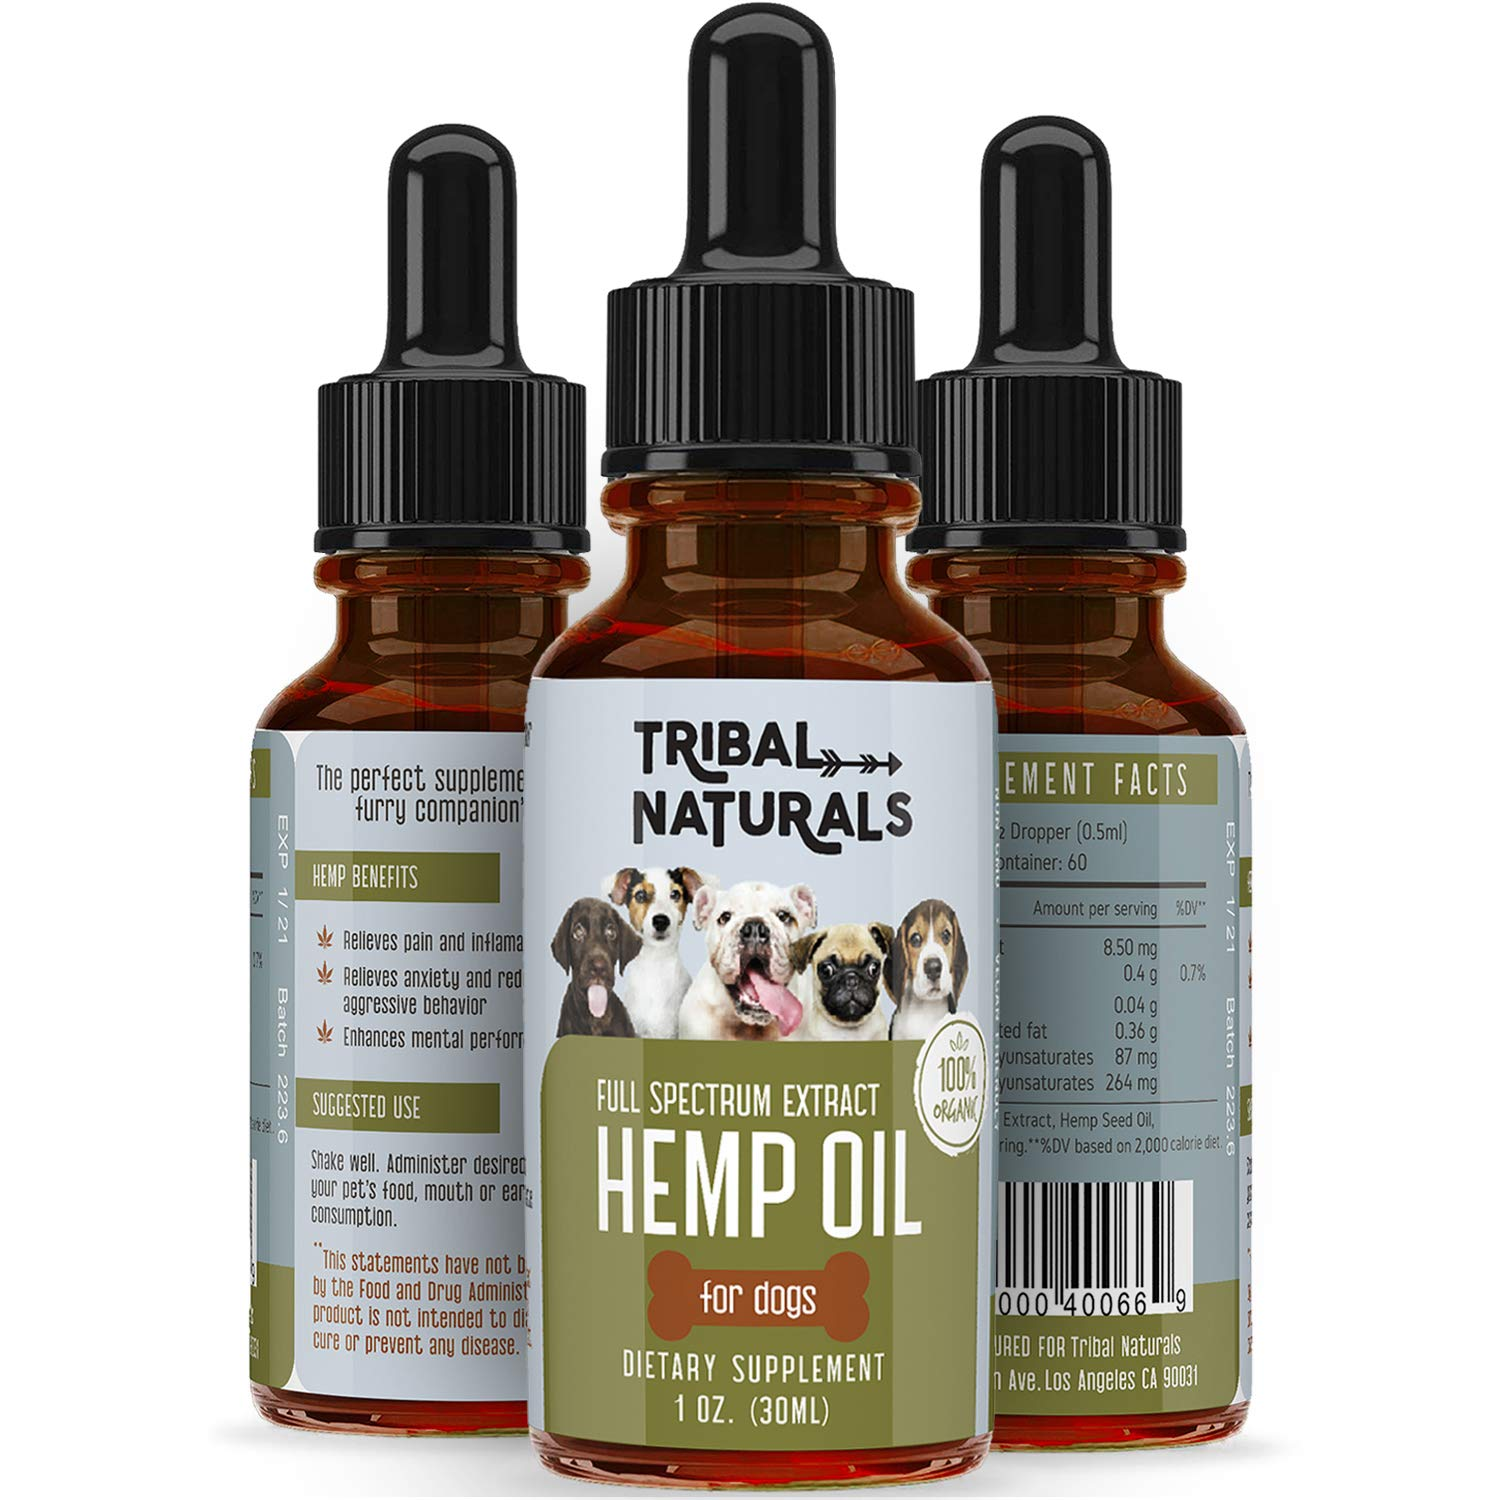 Organic Hemp Seed Oil for Dogs, 500MG Pure Pets Hemp Oil, Full Spectrum Hemp Oil for Pain Relief, Dog Anxiety Relief & Nausea Relief, Hemp Oil Dog Treats ...